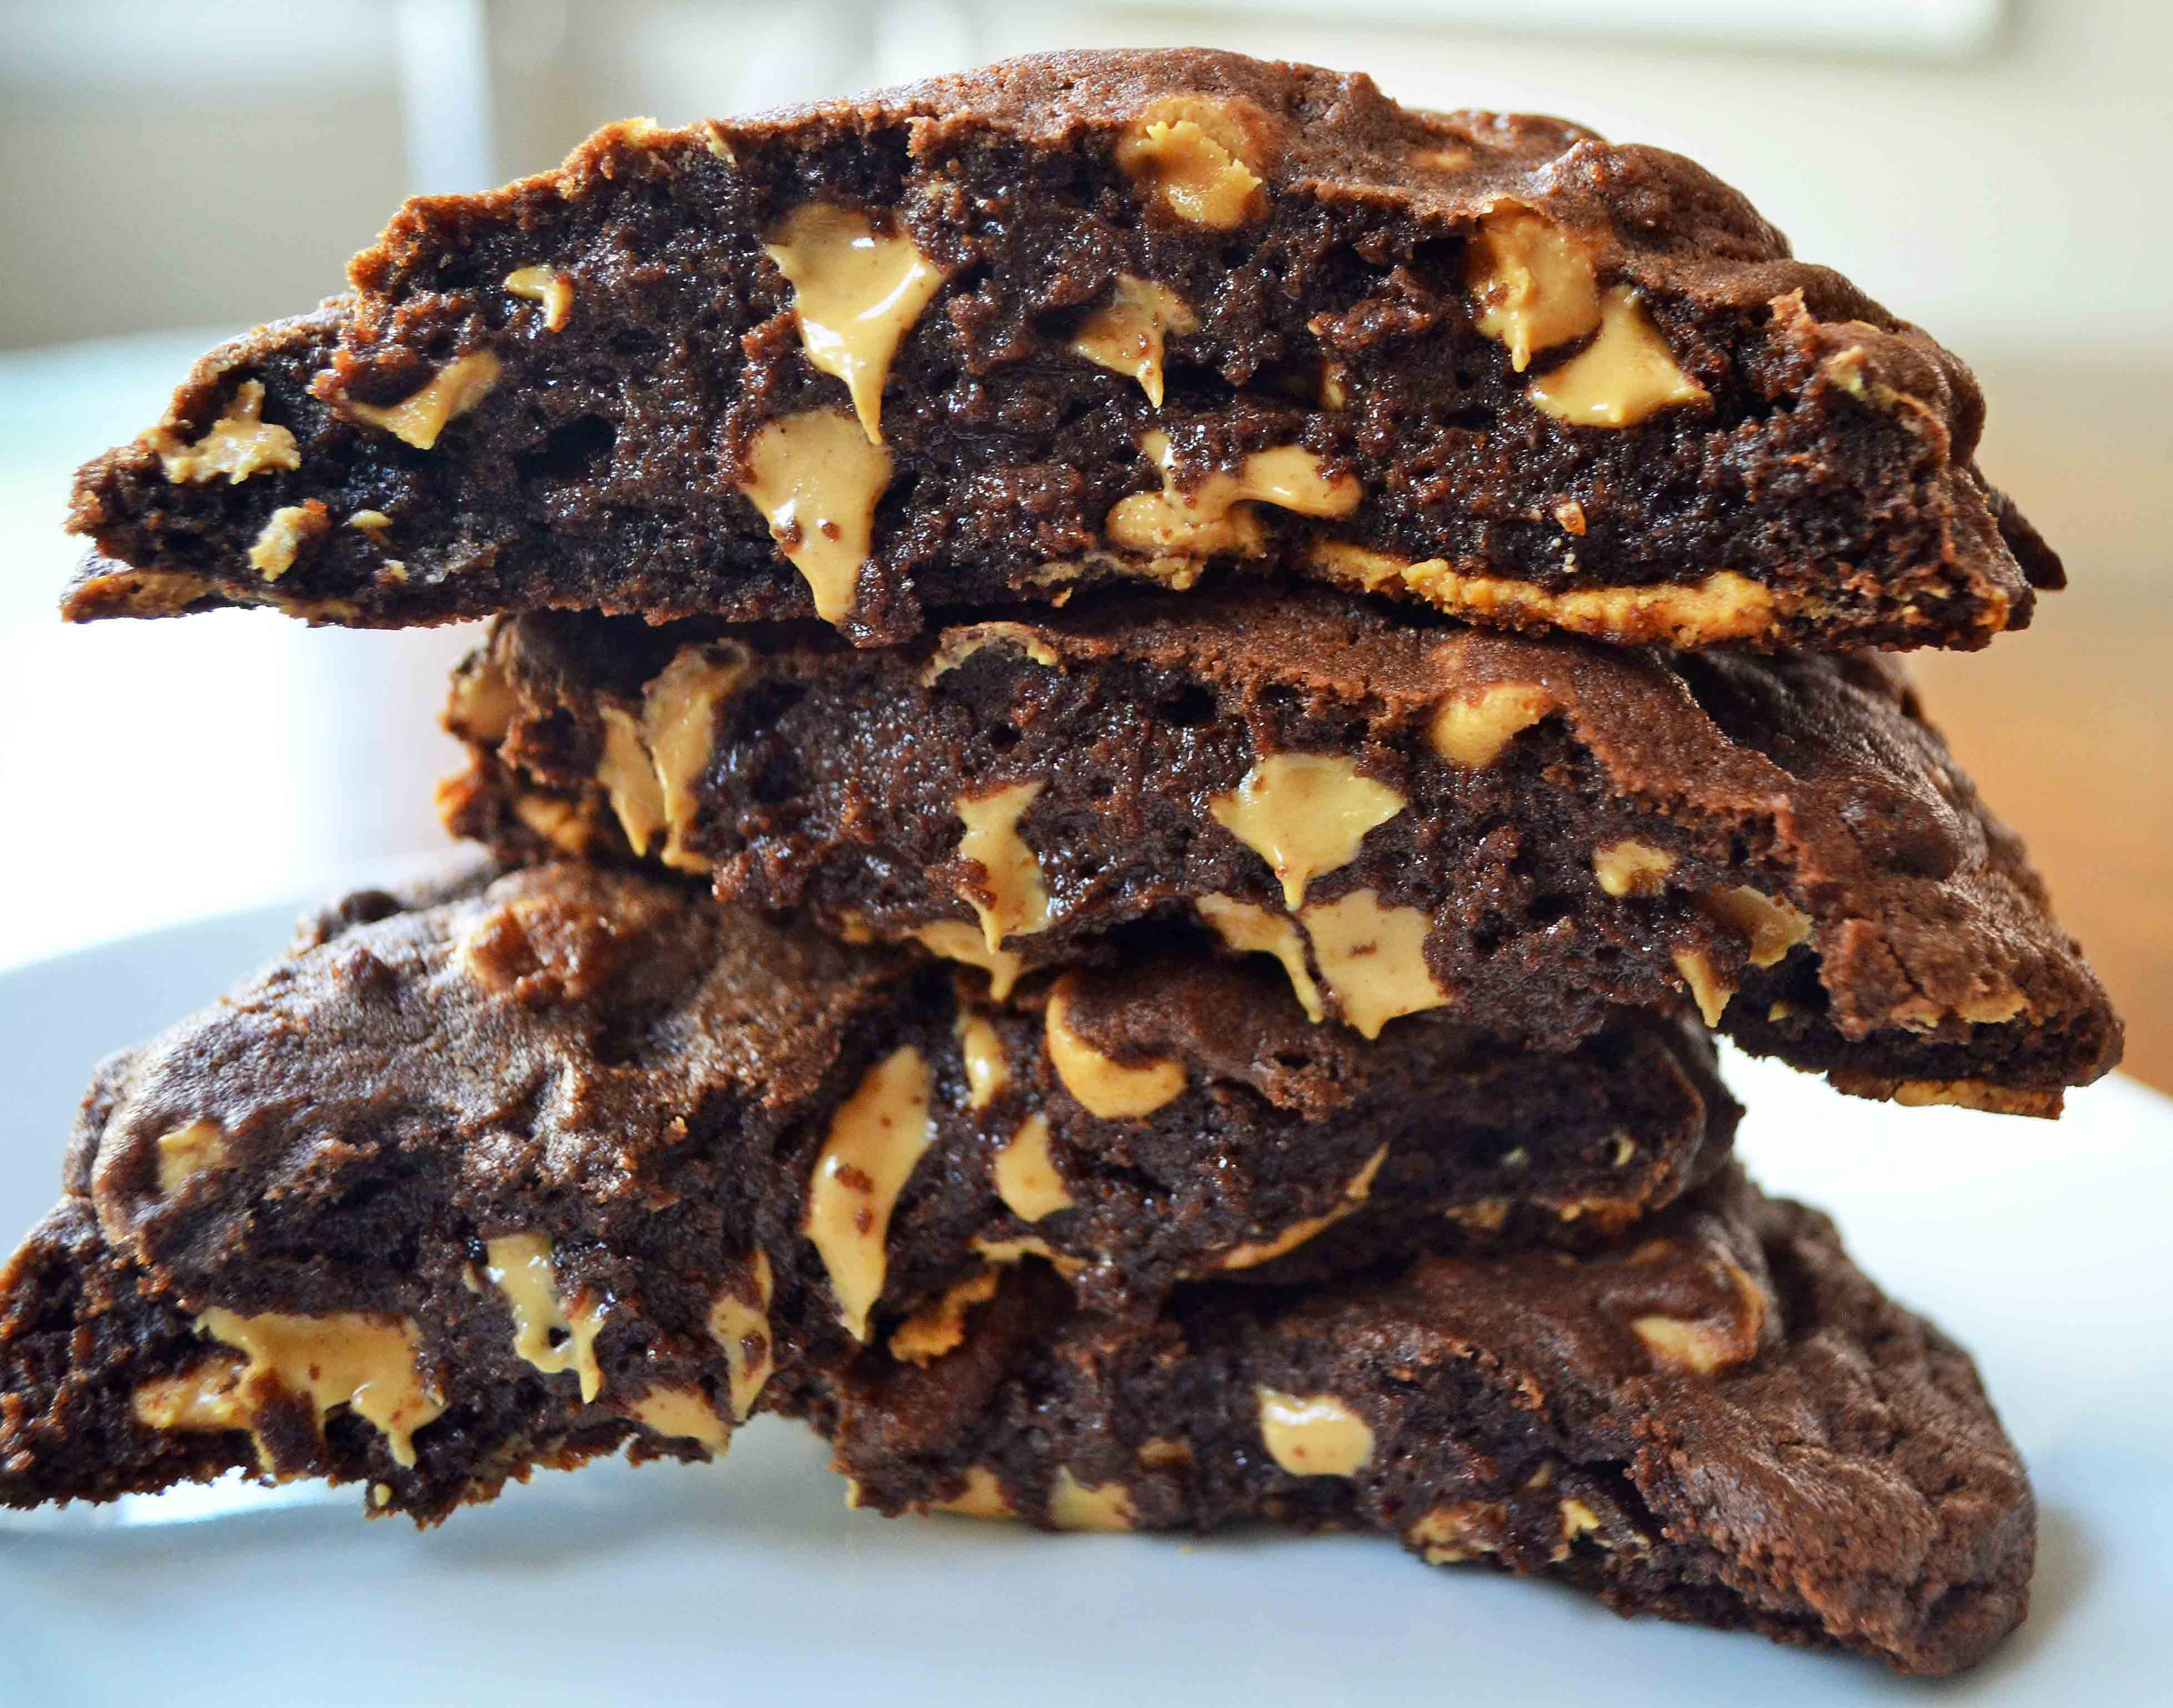 Levain Bakery Dark Chocolate Peanut Butter Chip Cookie. The Best Copcyat Levain Bakery Chocolate Peanut Butter Chip Cookie Recipe. www.modernhoney.com